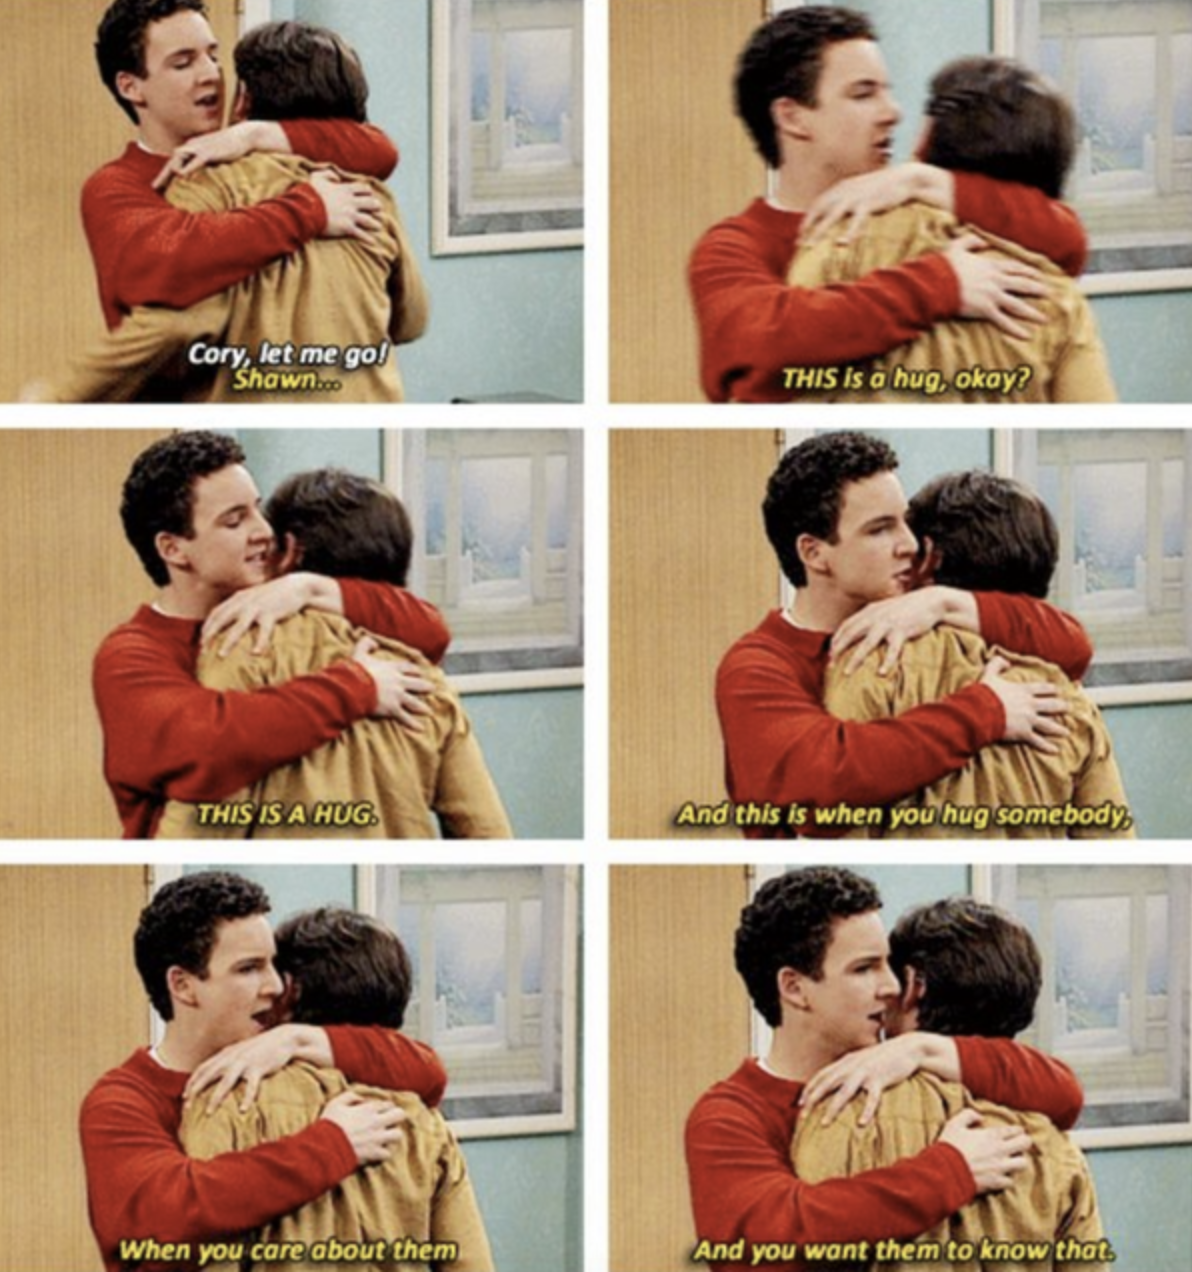 Cory hugs Shawn, who tells him to let him go; Cory goes on to explain what a hug is and how you do it when you care about somebody